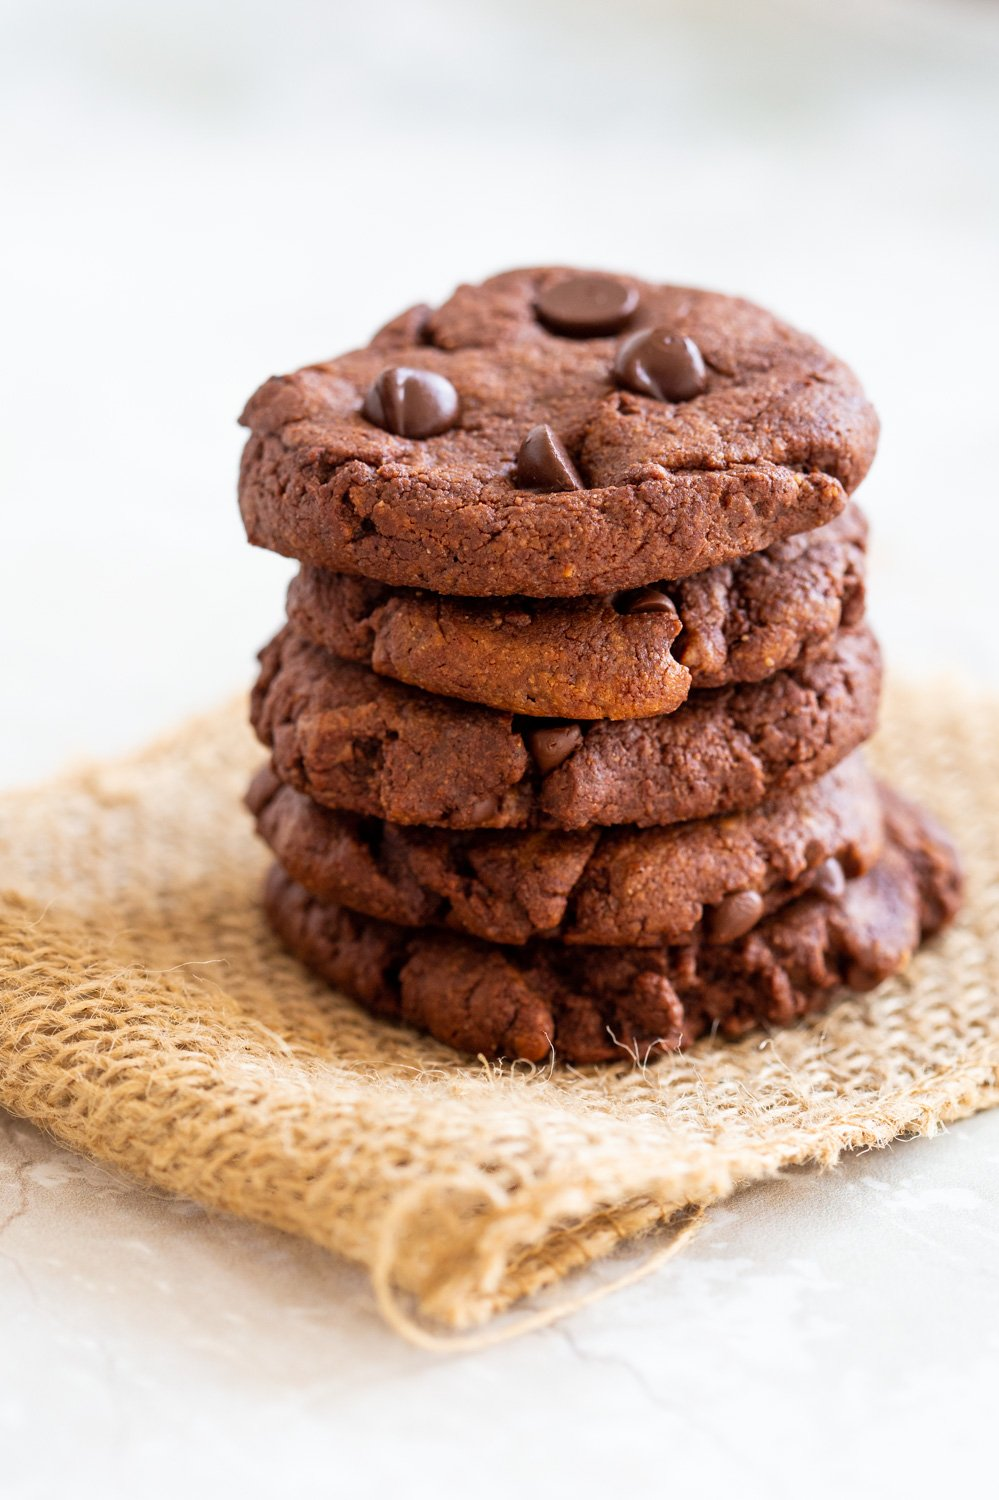 1 Bowl Chocolate Tahini Cookies. Amazing Texture and flavor in these Easy Cookies. 8 Ingredients. 20 Mins. #Vegan #Oilfree #Glutenfree #Grainfree #Nutfree #Recipe #VeganRicha